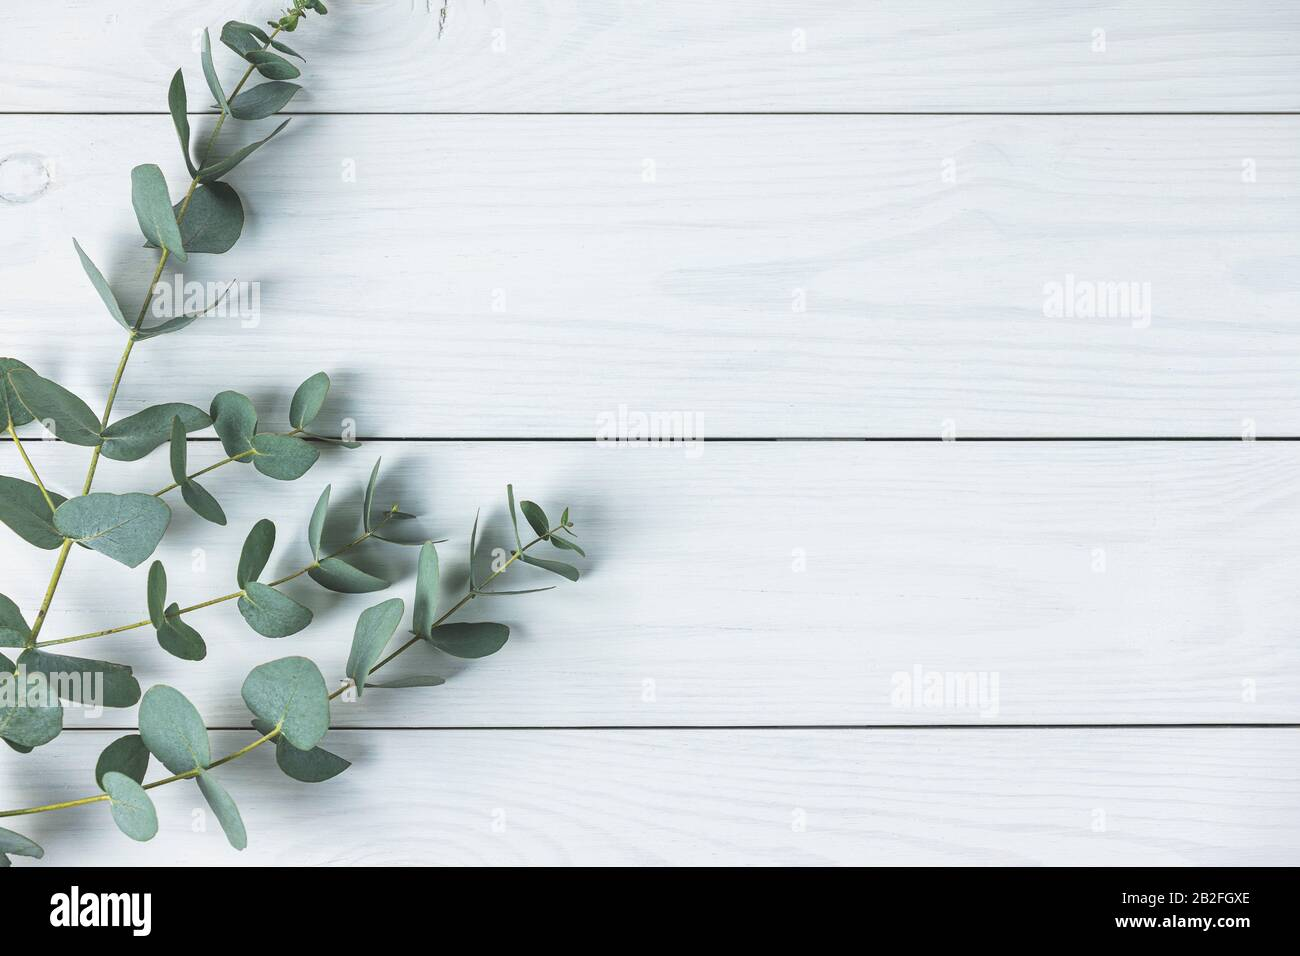 eucalyptus leaves on white wooden background frame made of eucalyptus branches flat lay top view copy space 2B2FGXE